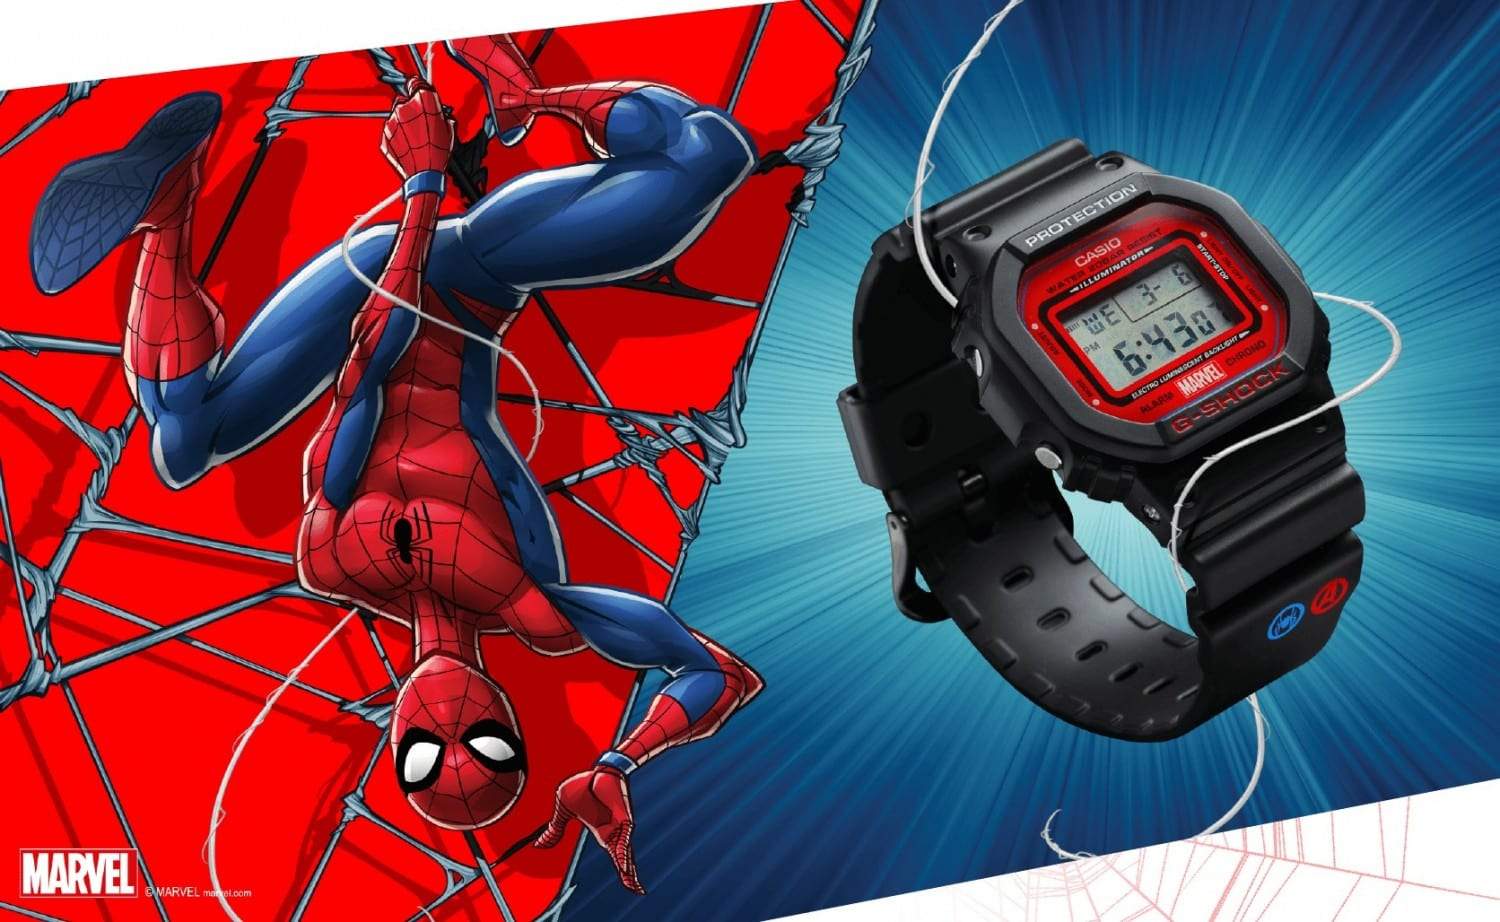 G-SHOCK x Marvel 'Avengers' Collection | The Source